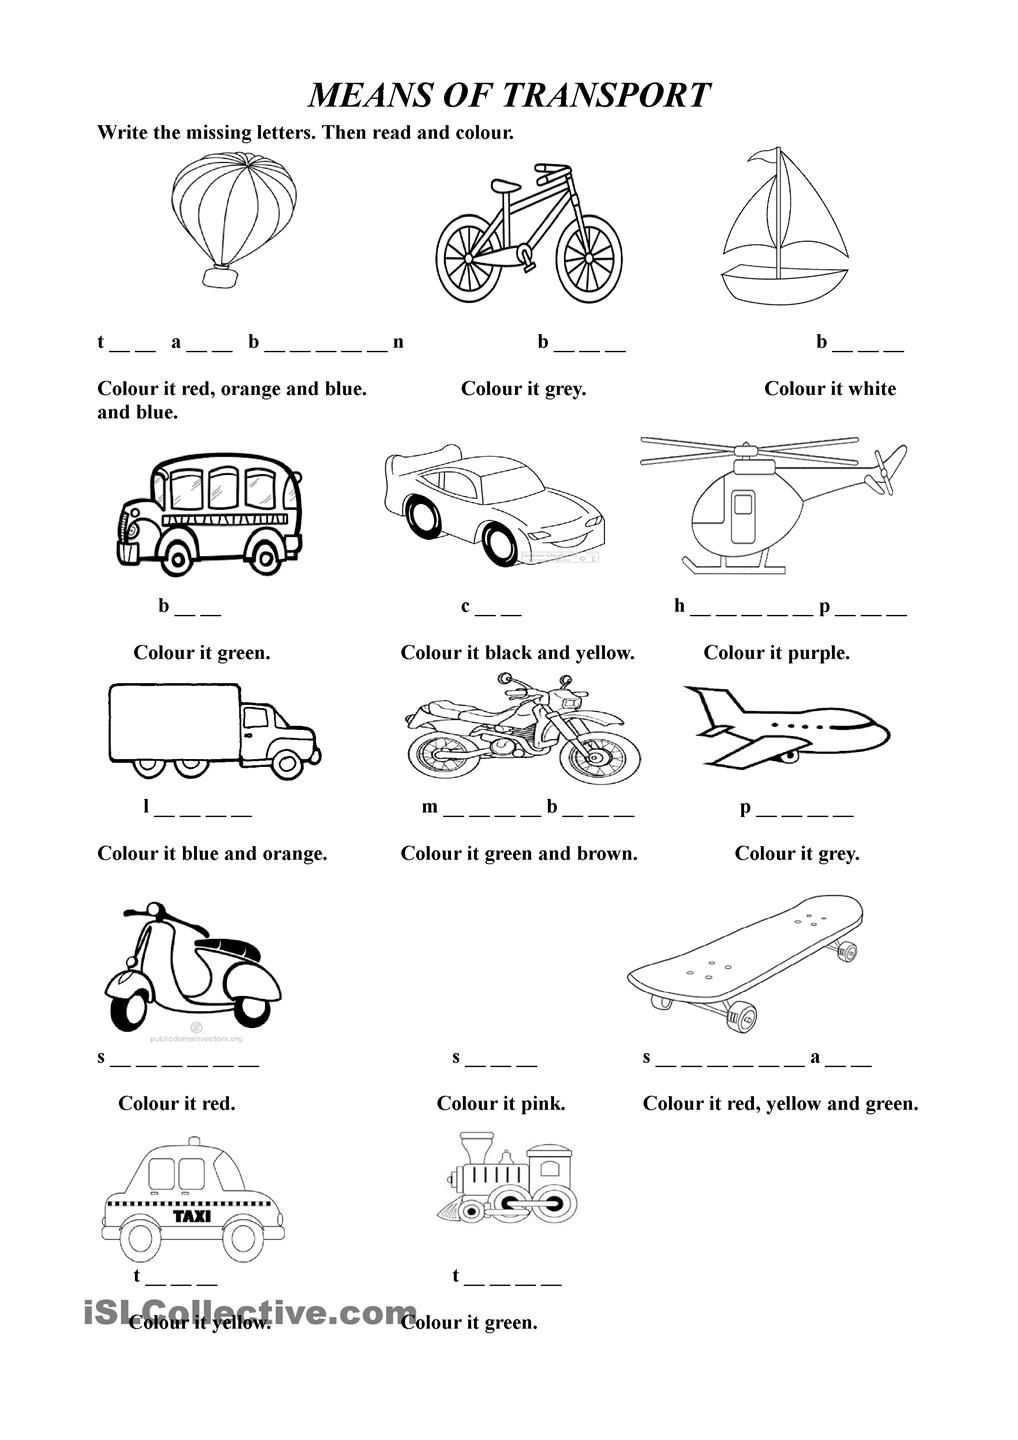 means of transport esl worksheets of the day ingles primaria fichas actividades de ingles. Black Bedroom Furniture Sets. Home Design Ideas